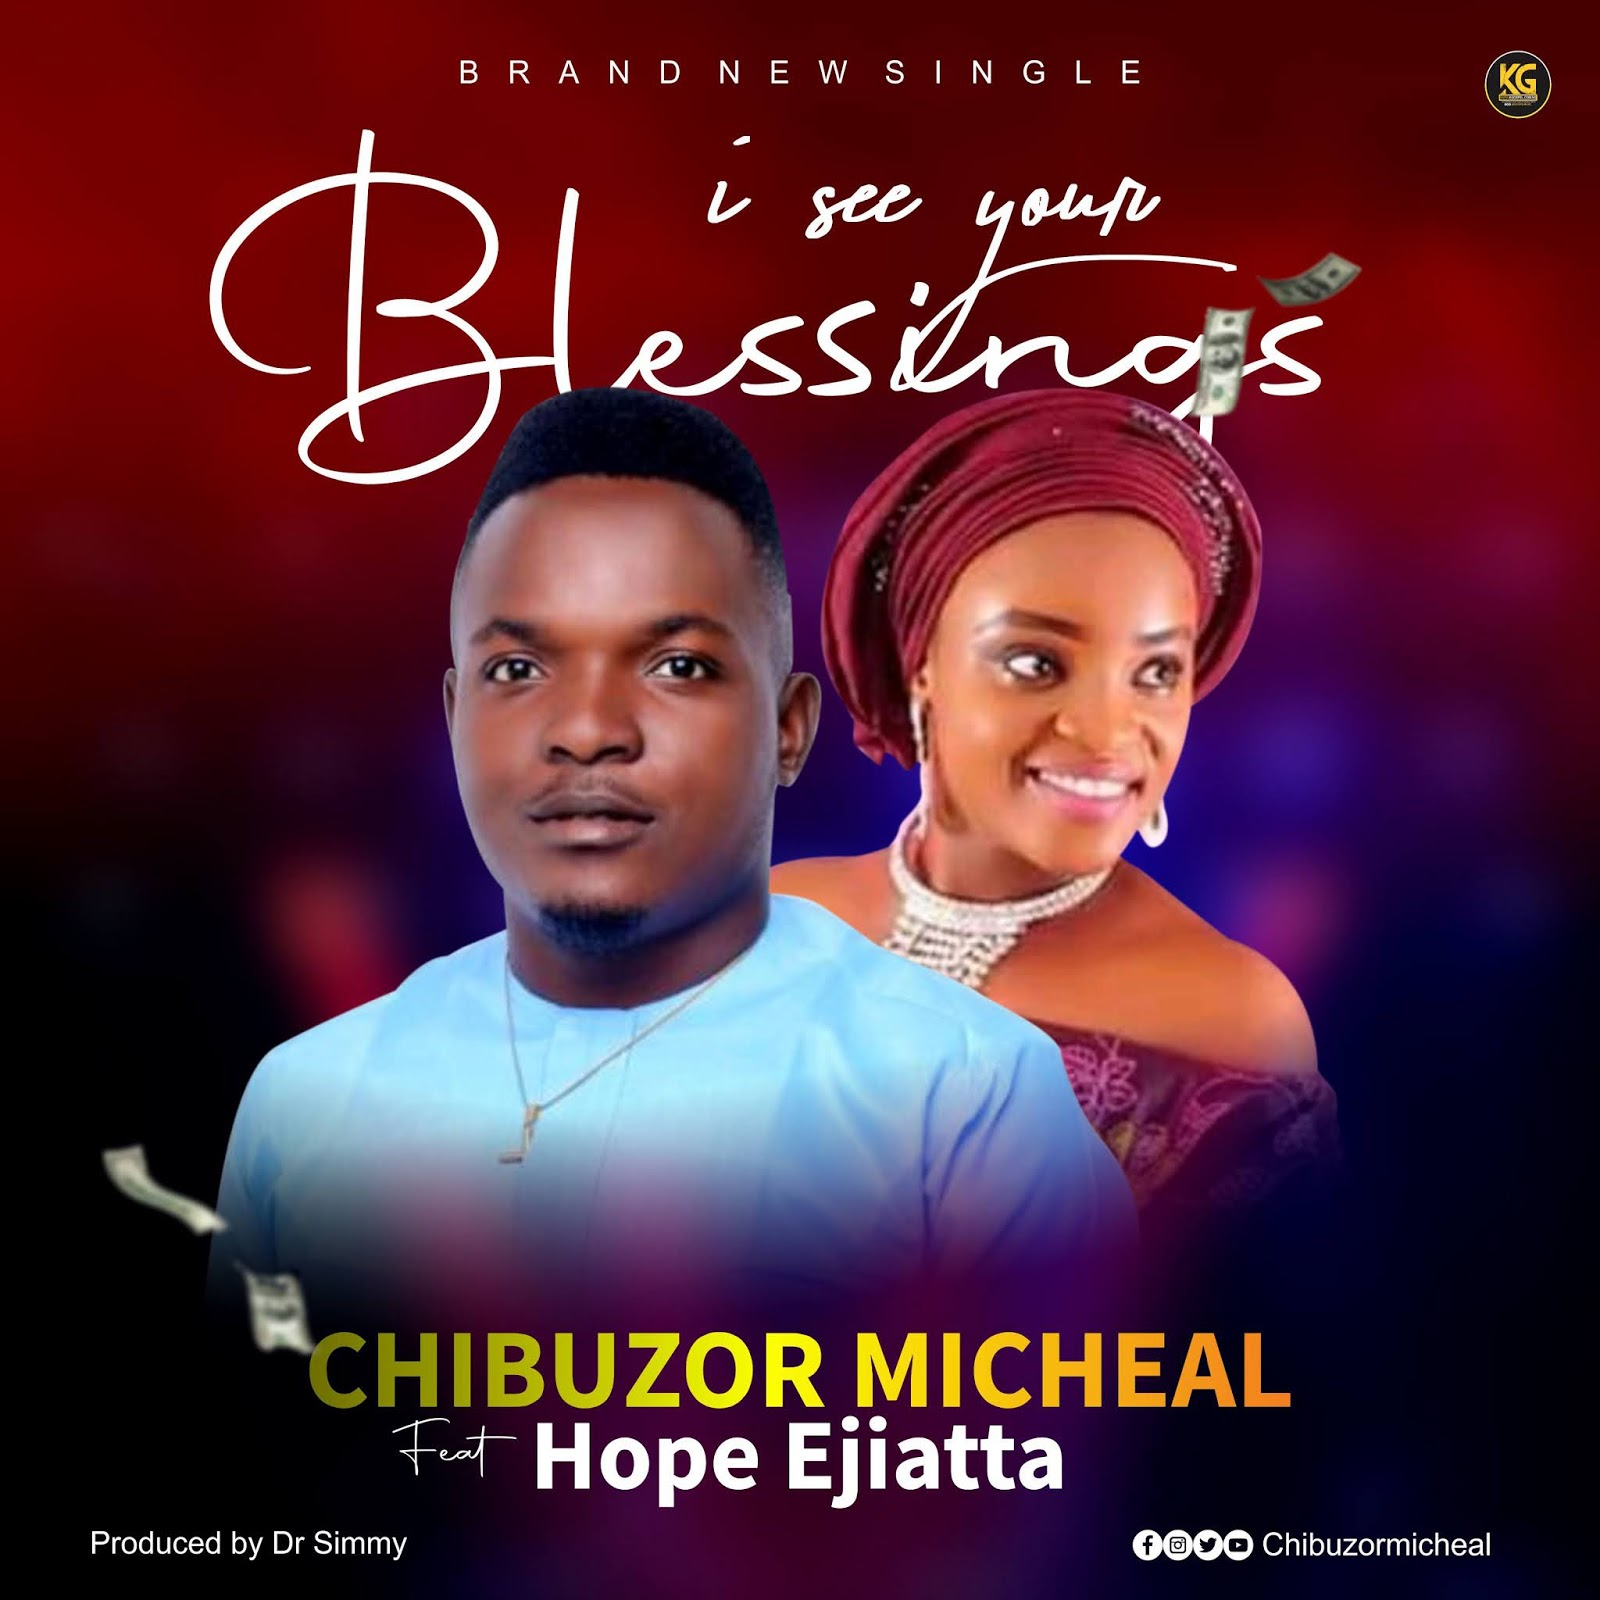 I See Your Blessings - Chibuzor Micheal Feat Hope Ejiatta